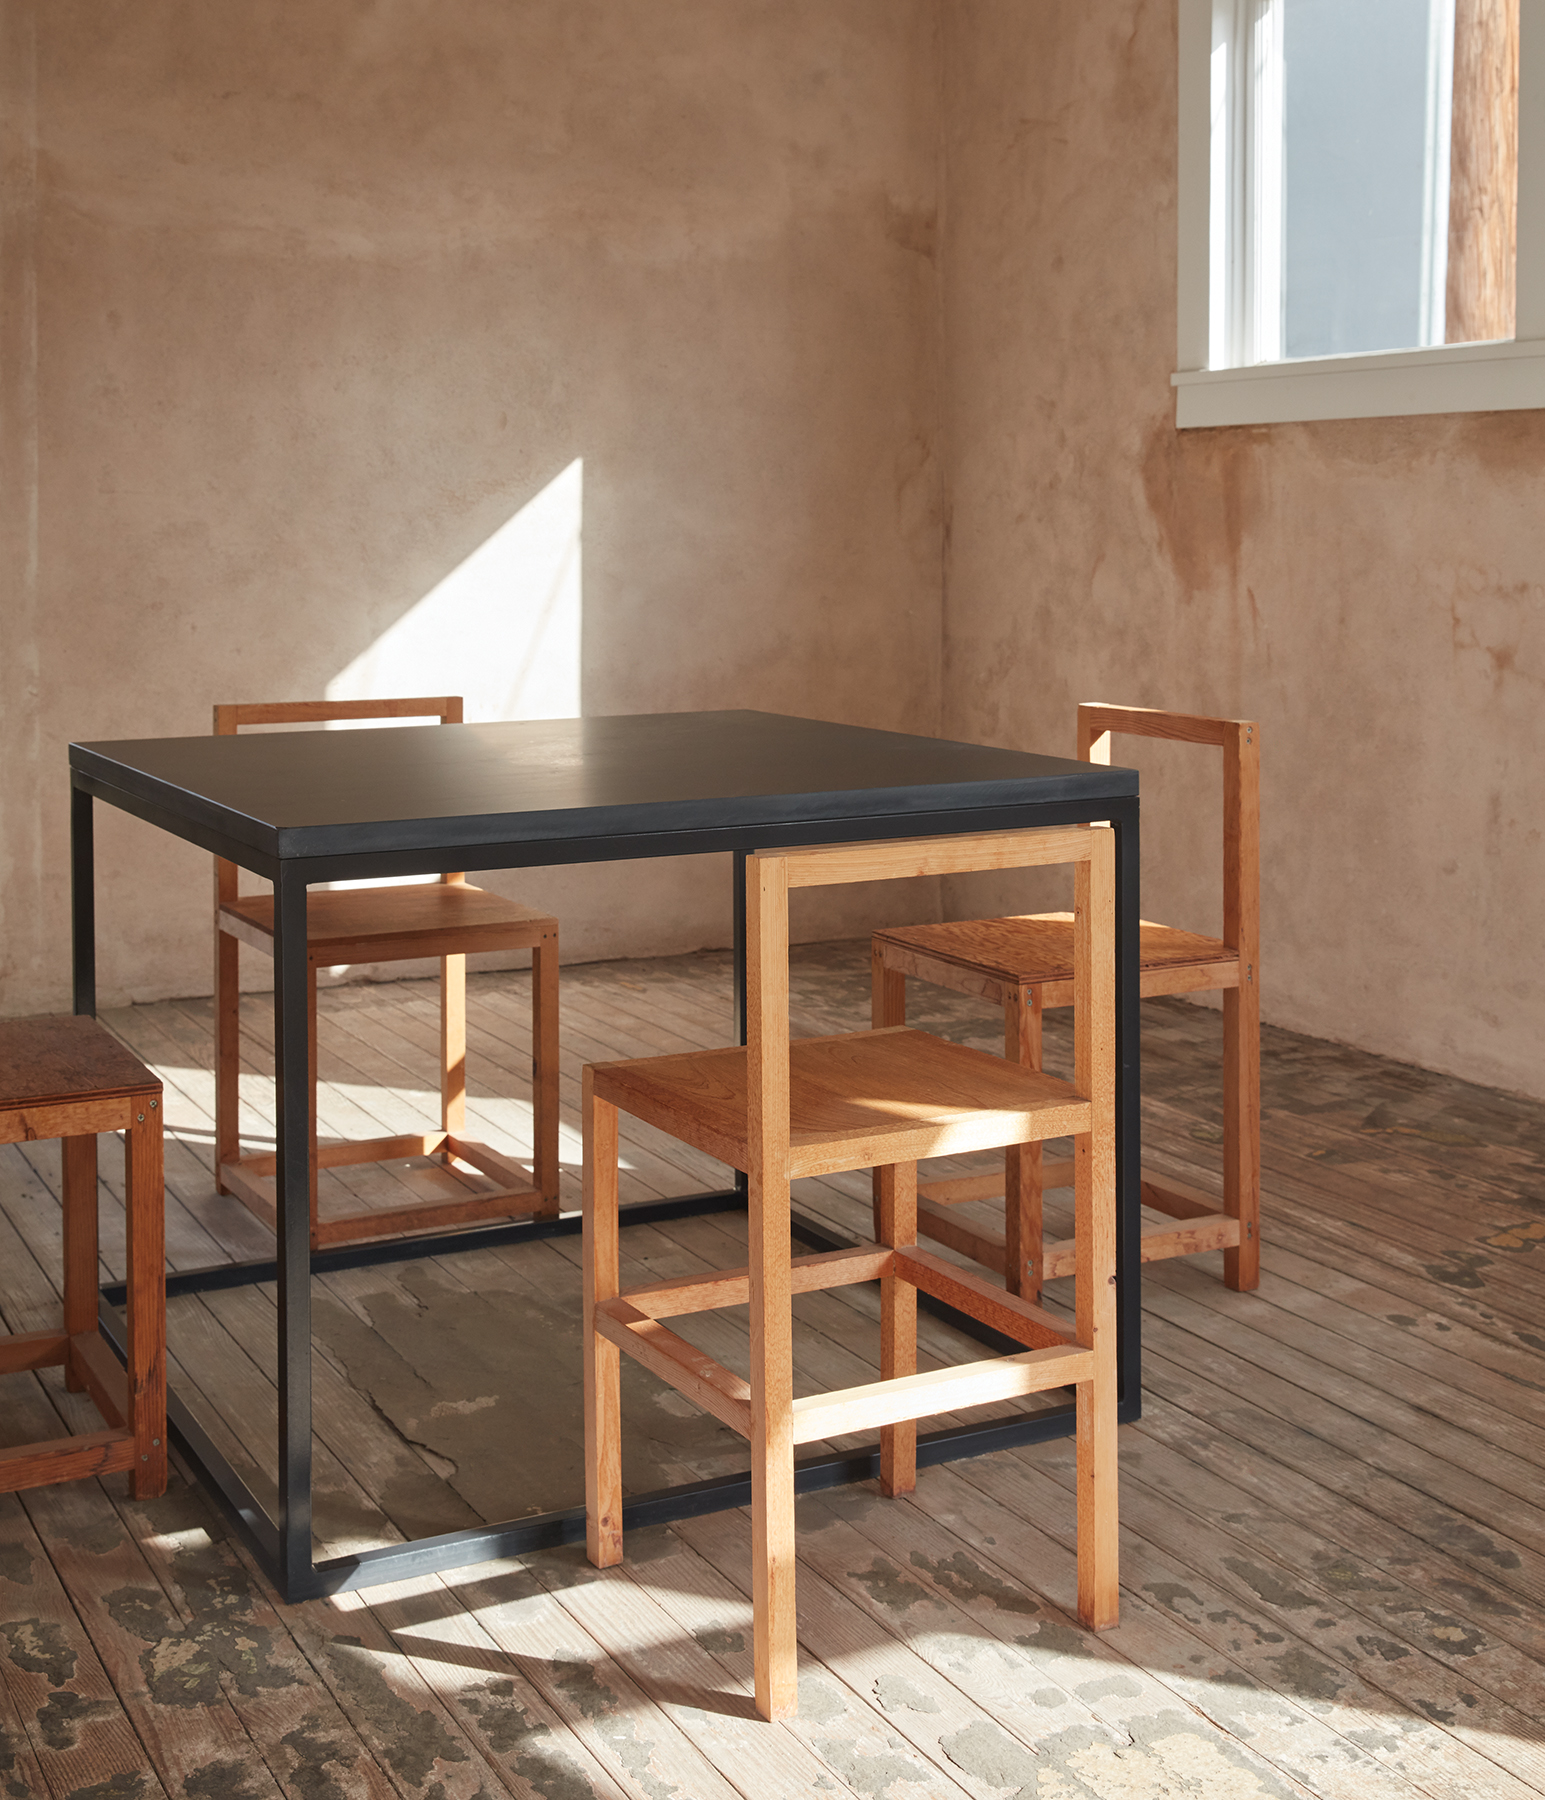 Juddu0027s Chairs And Table. Martien Mulder For WSJ.